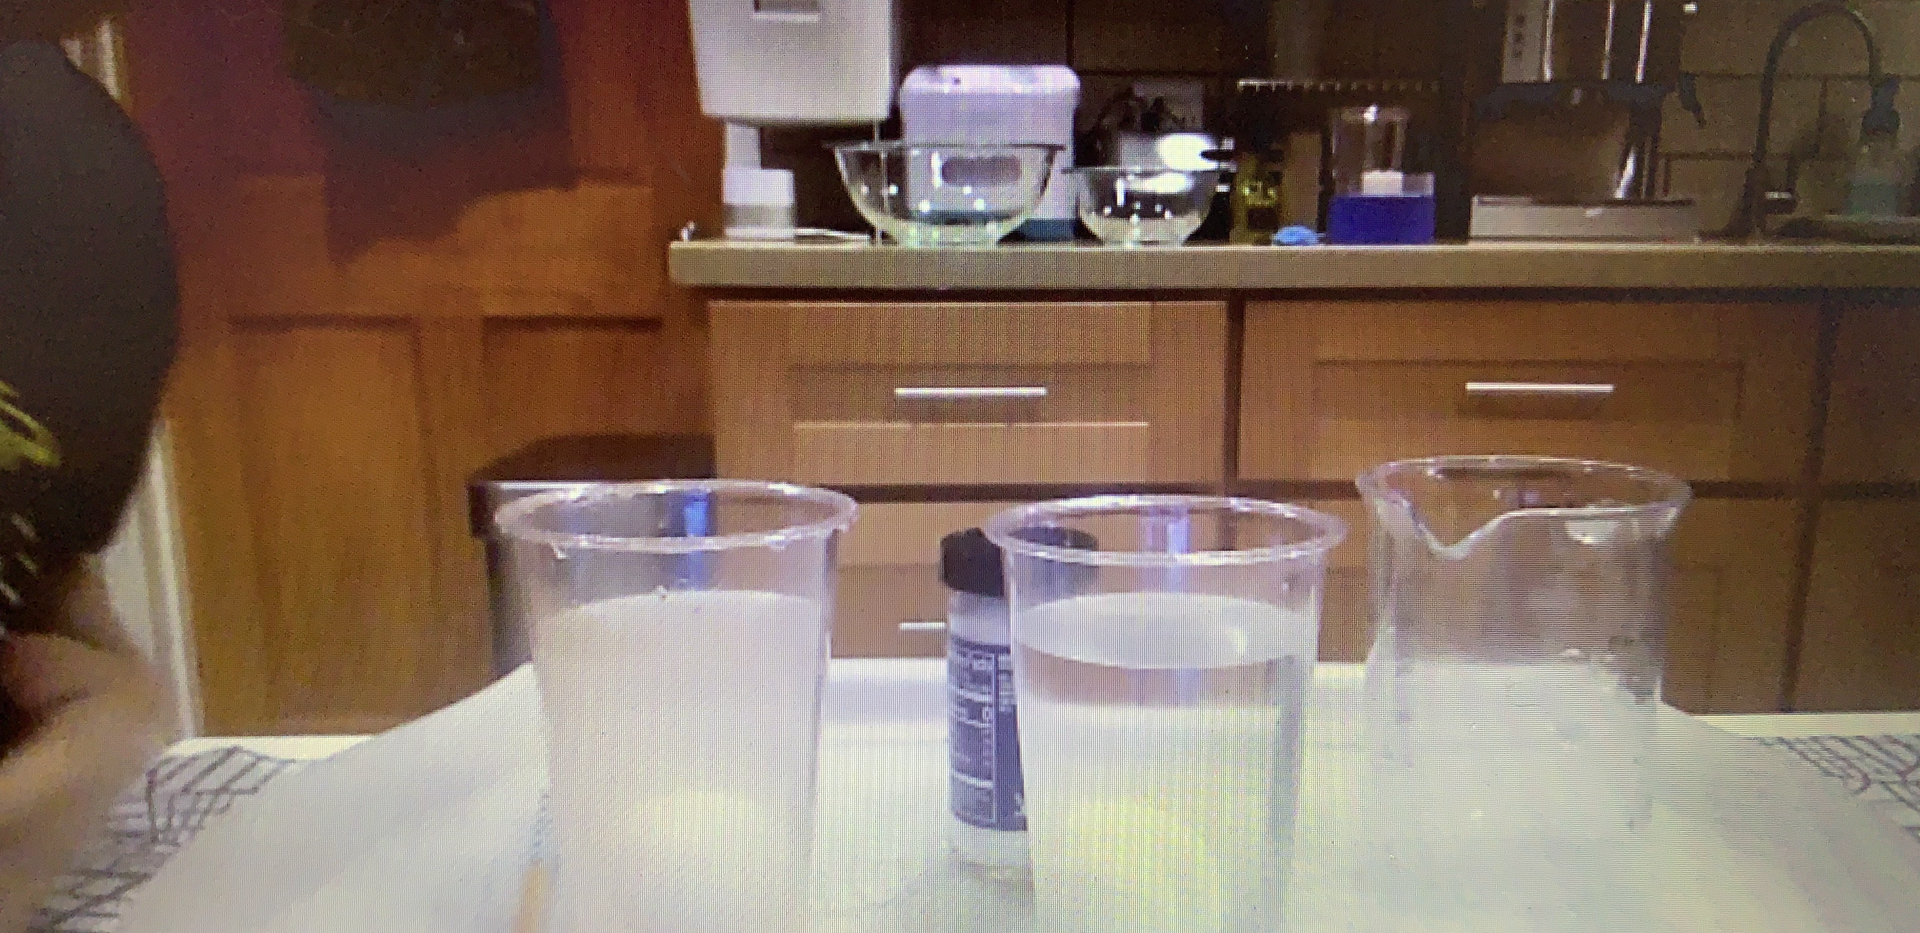 During class, a student shows his environmental science experiment's set up.